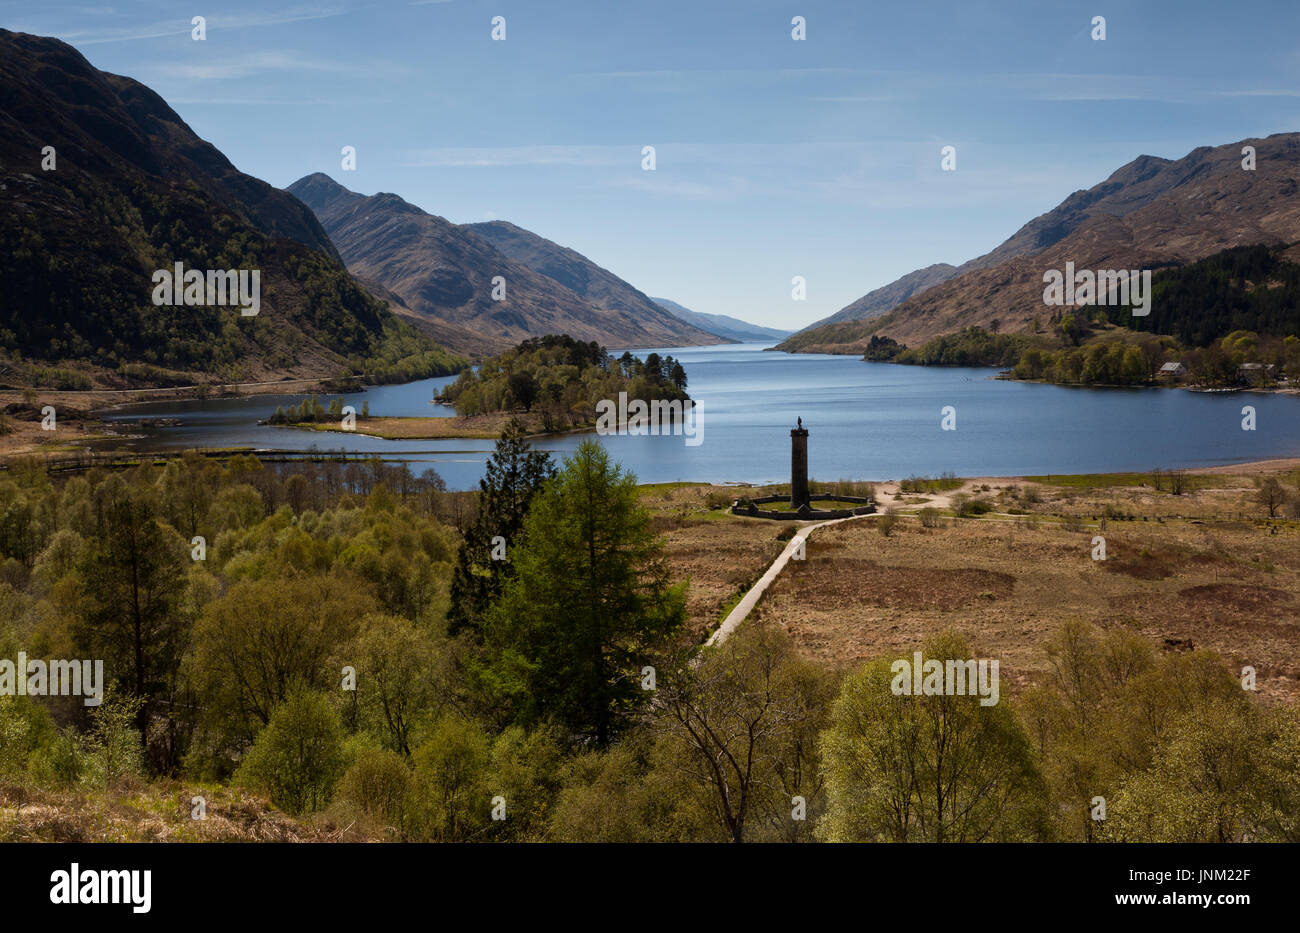 The Glenfinnan Monument standing at the head of Loch Shiel, Scotland, UK - Stock Image